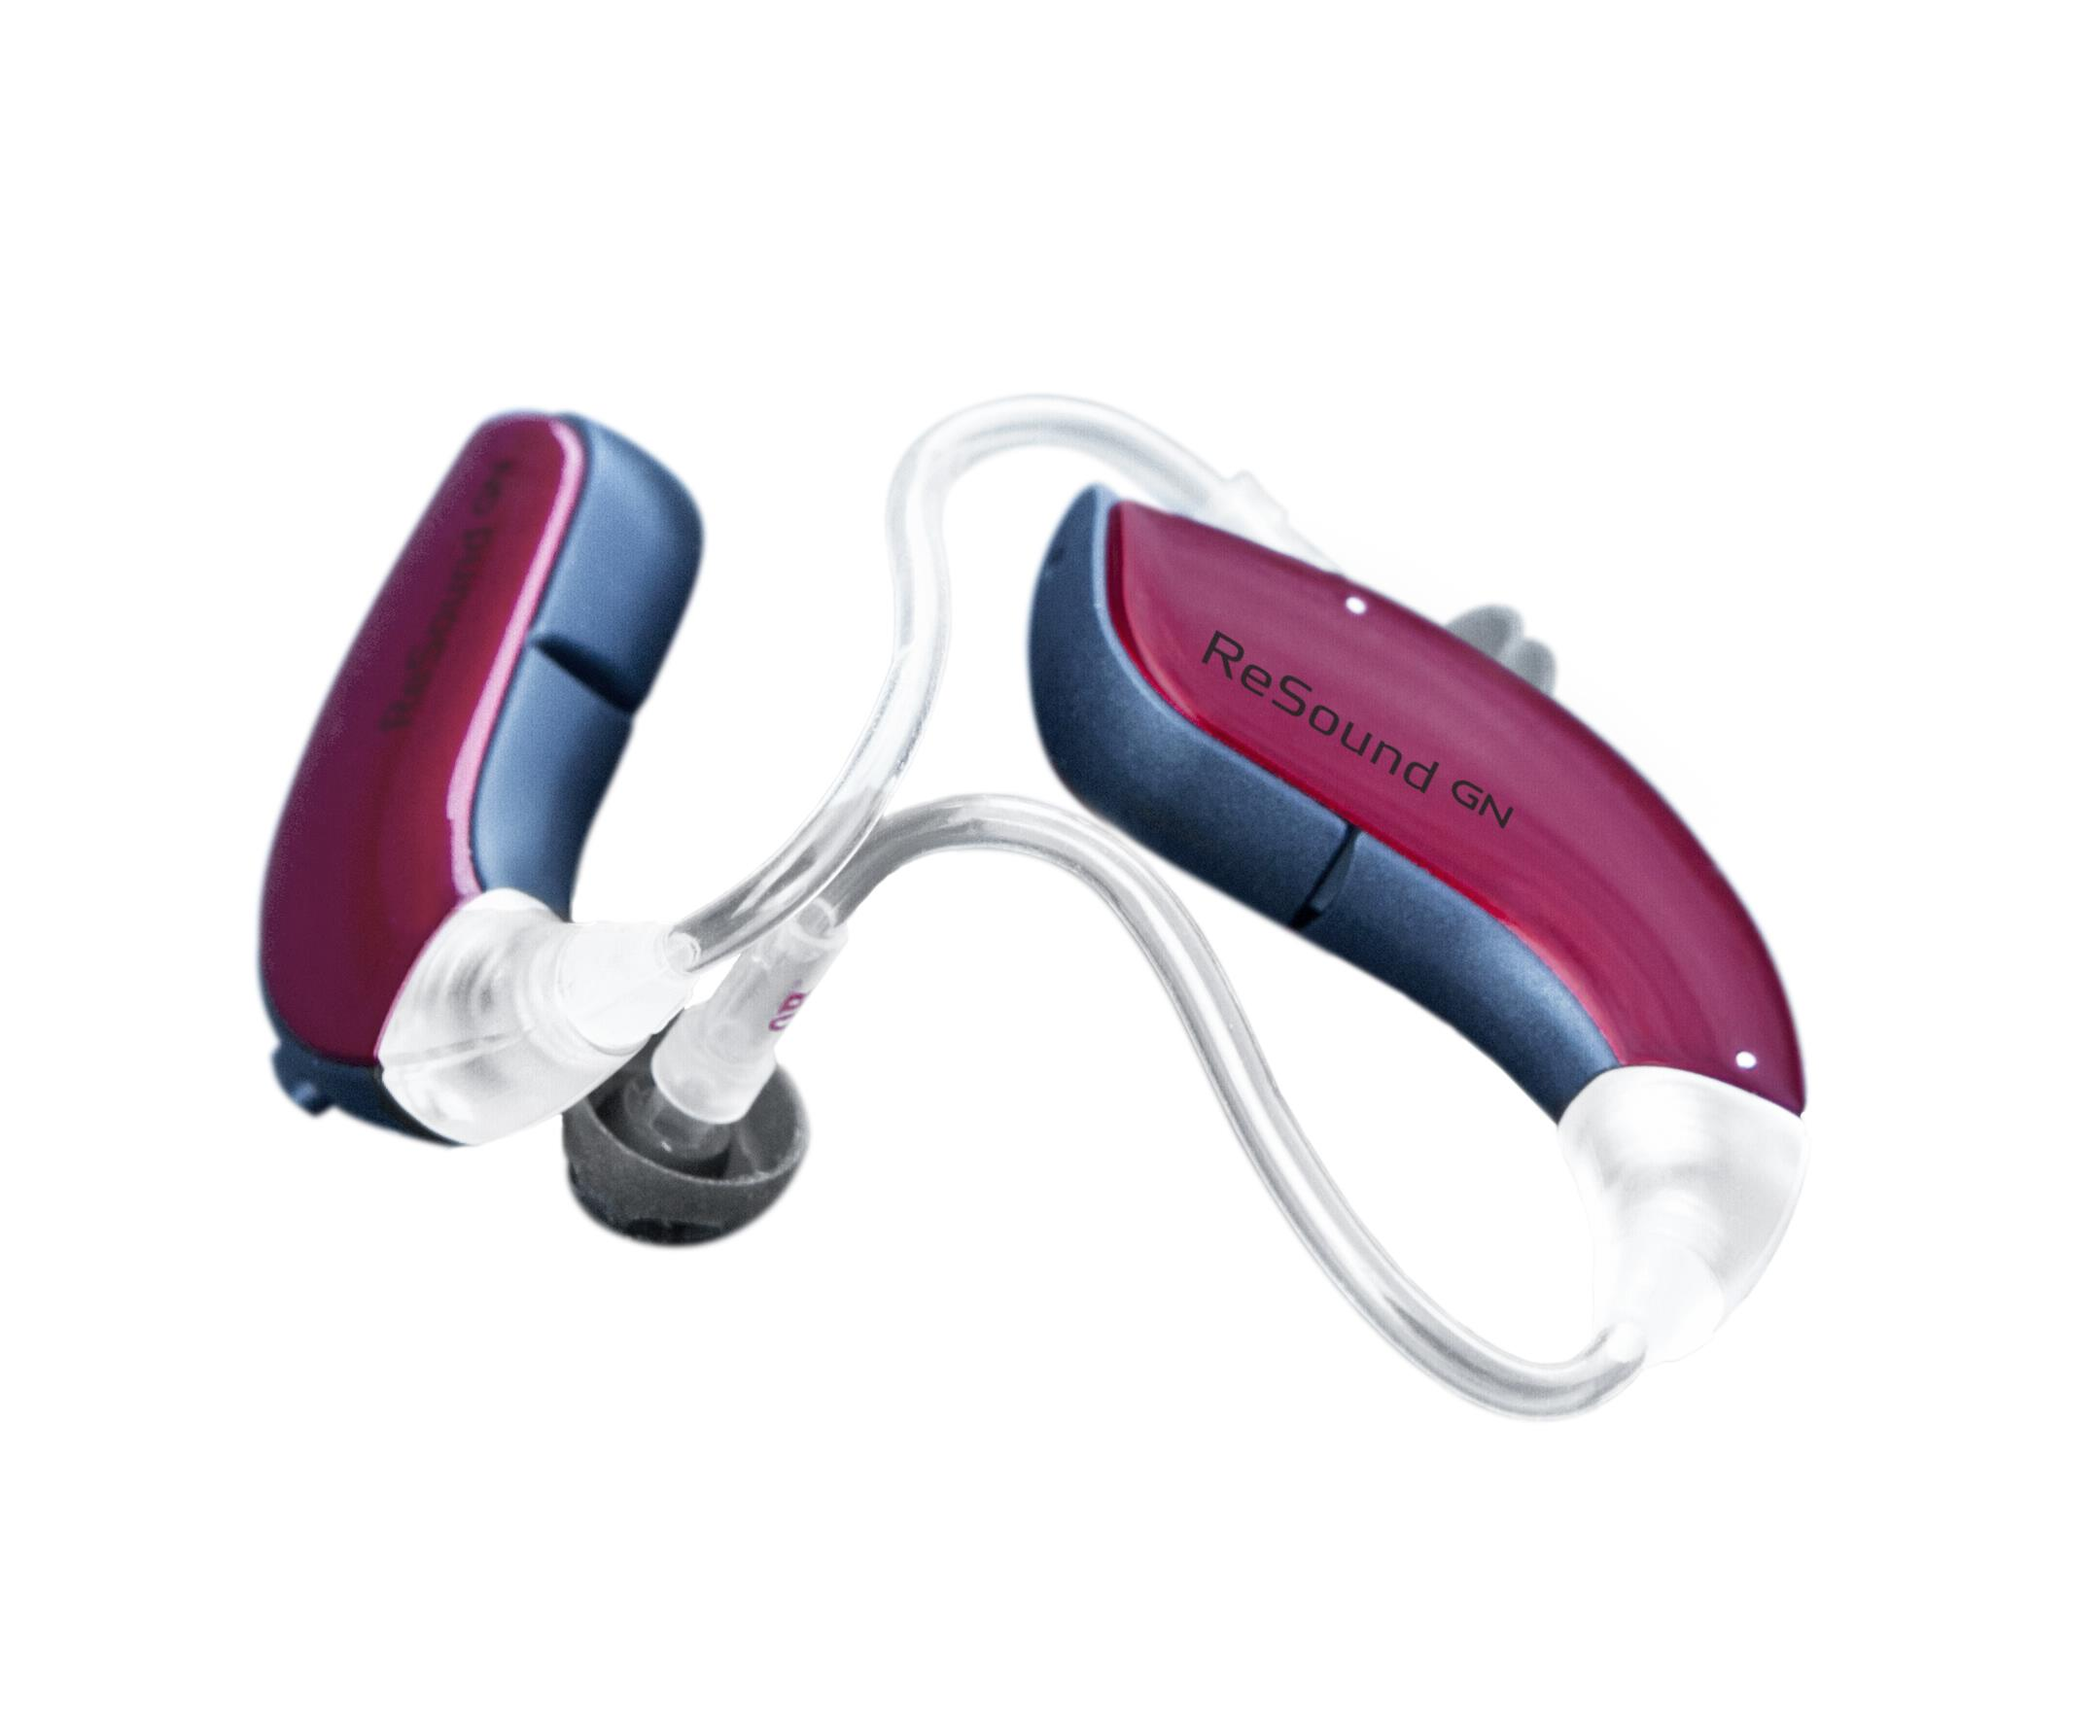 Resound Innovative hearing aids